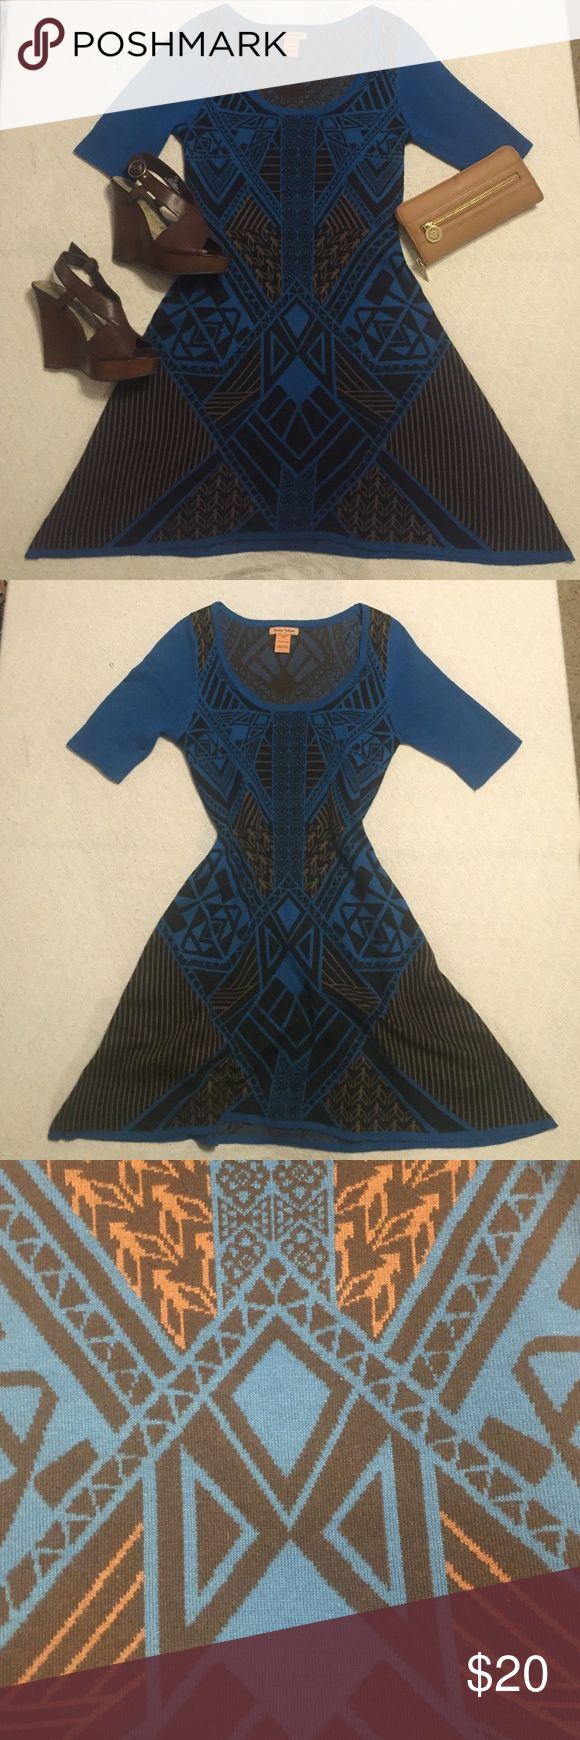 Aztec knitted dress This knitted dress is perfect for a autumn night. Slip on these wedges and you'll be good to go. This dress is fitted and doesn't have much give to it. Flying Tomato Dresses Midi